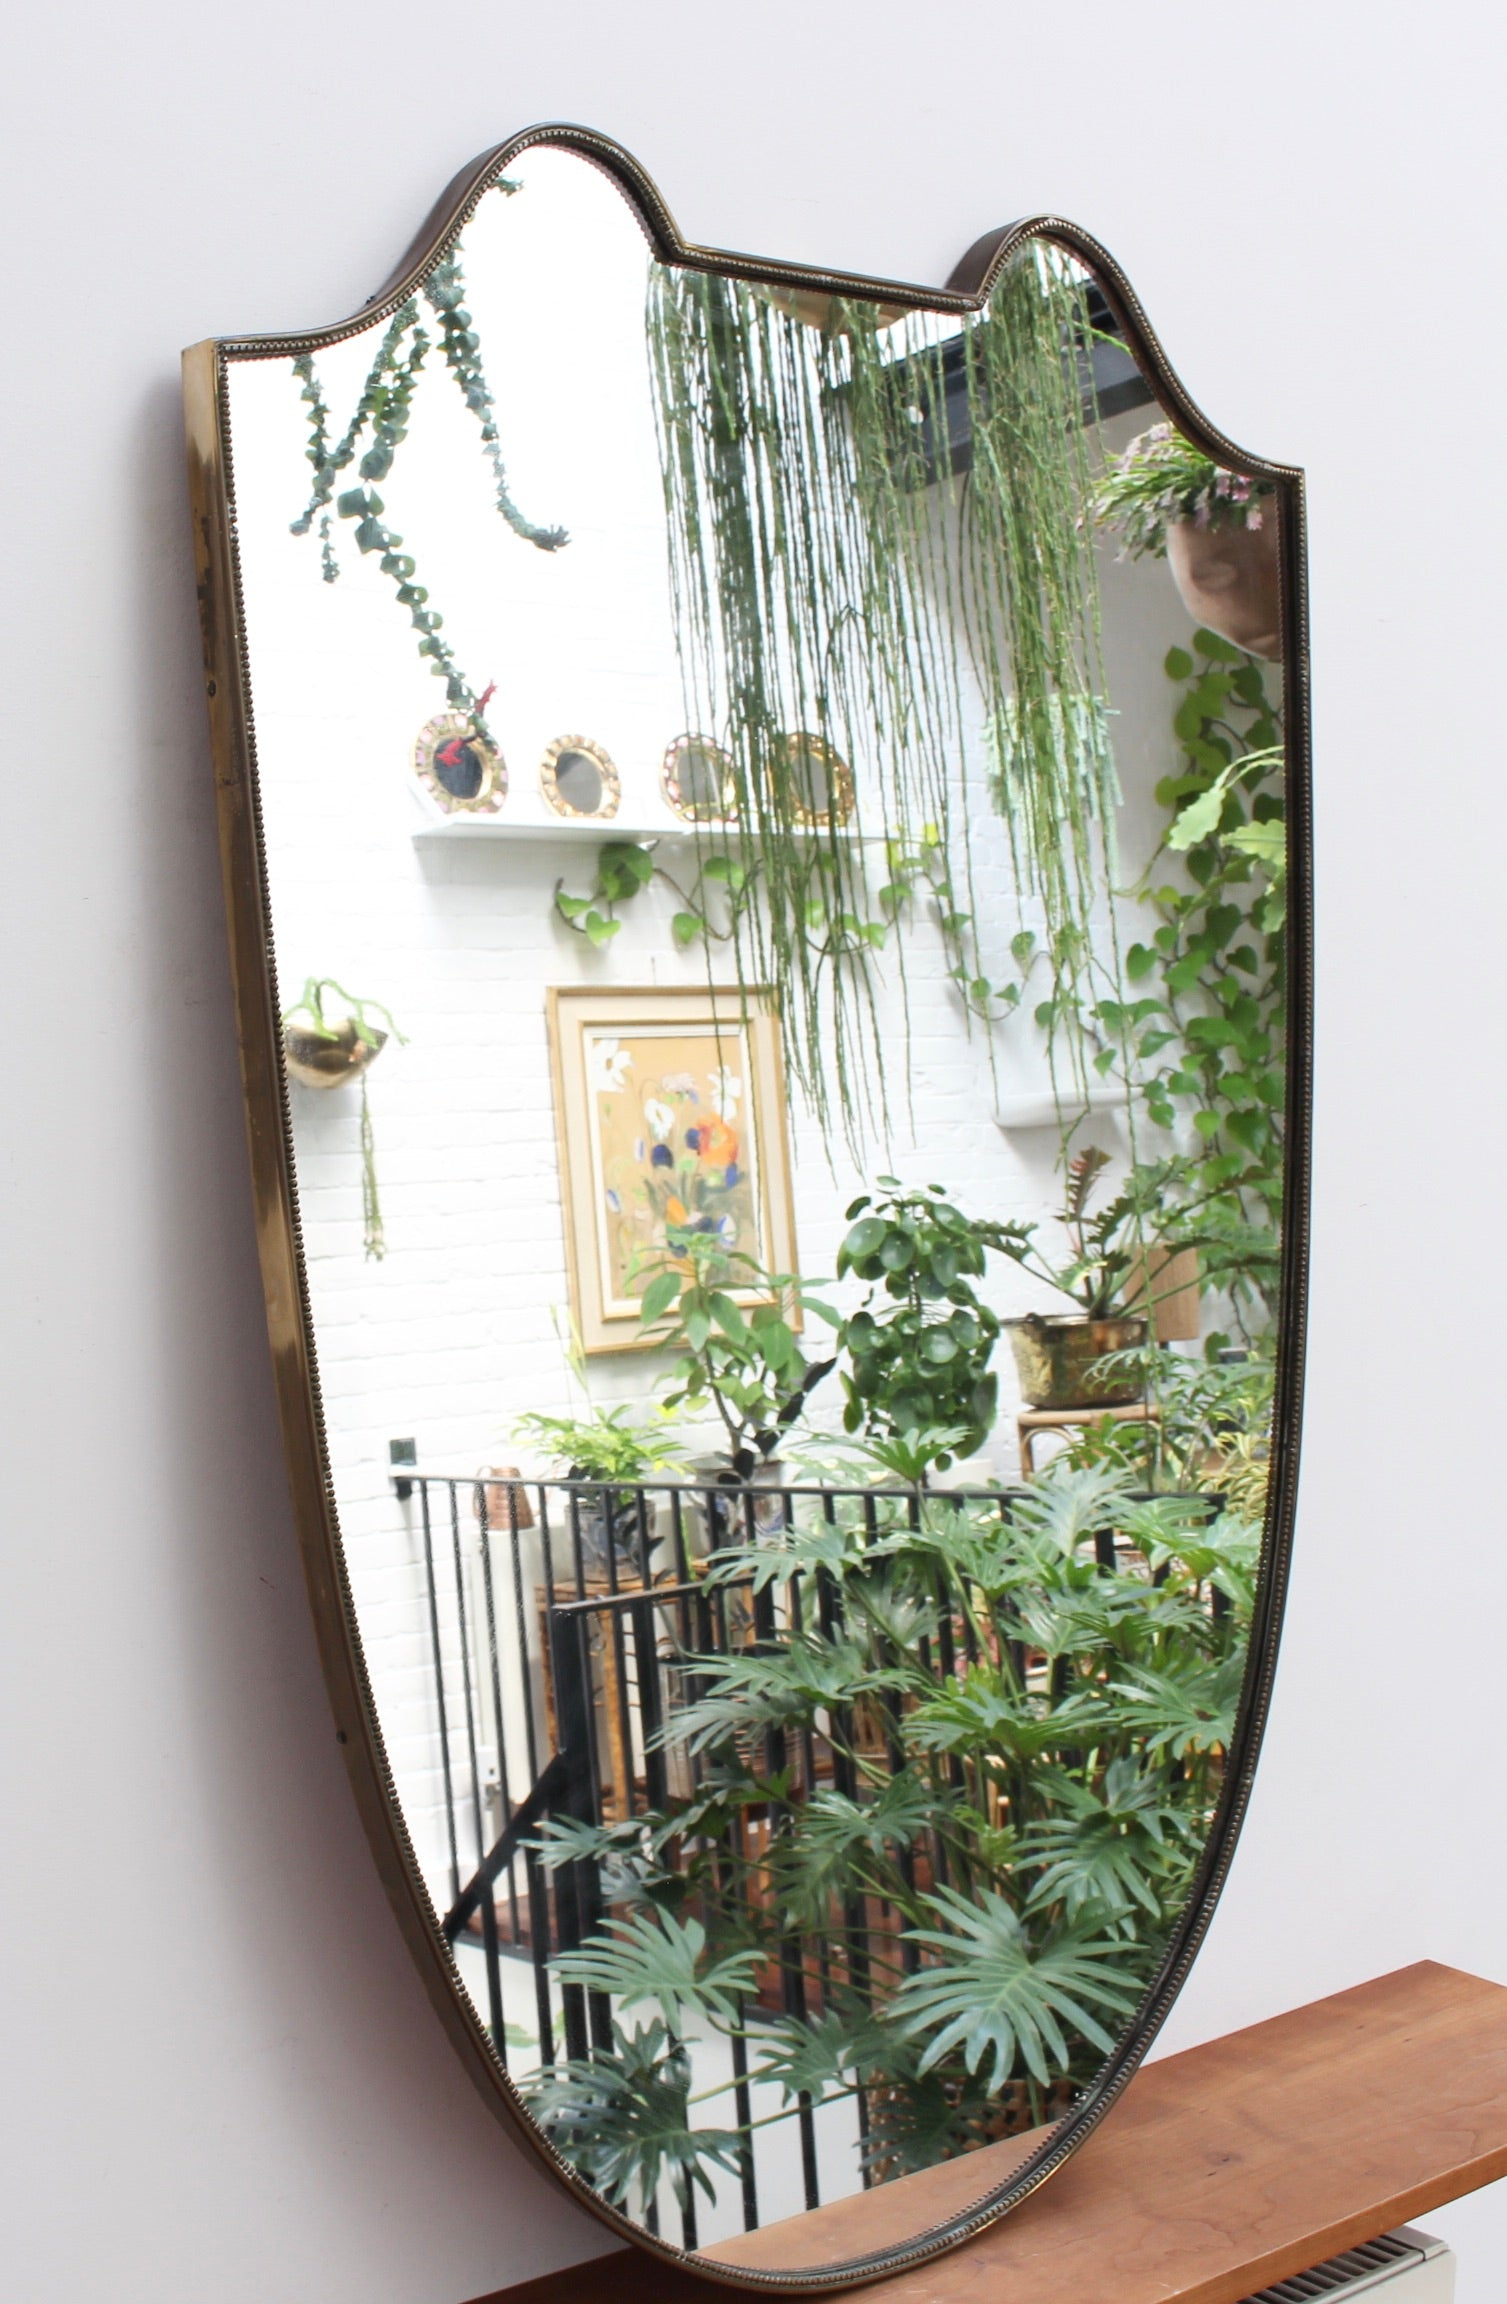 Mid-Century Italian Crest-Shaped Wall Mirror with Distinctive Beading (circa 1950s)